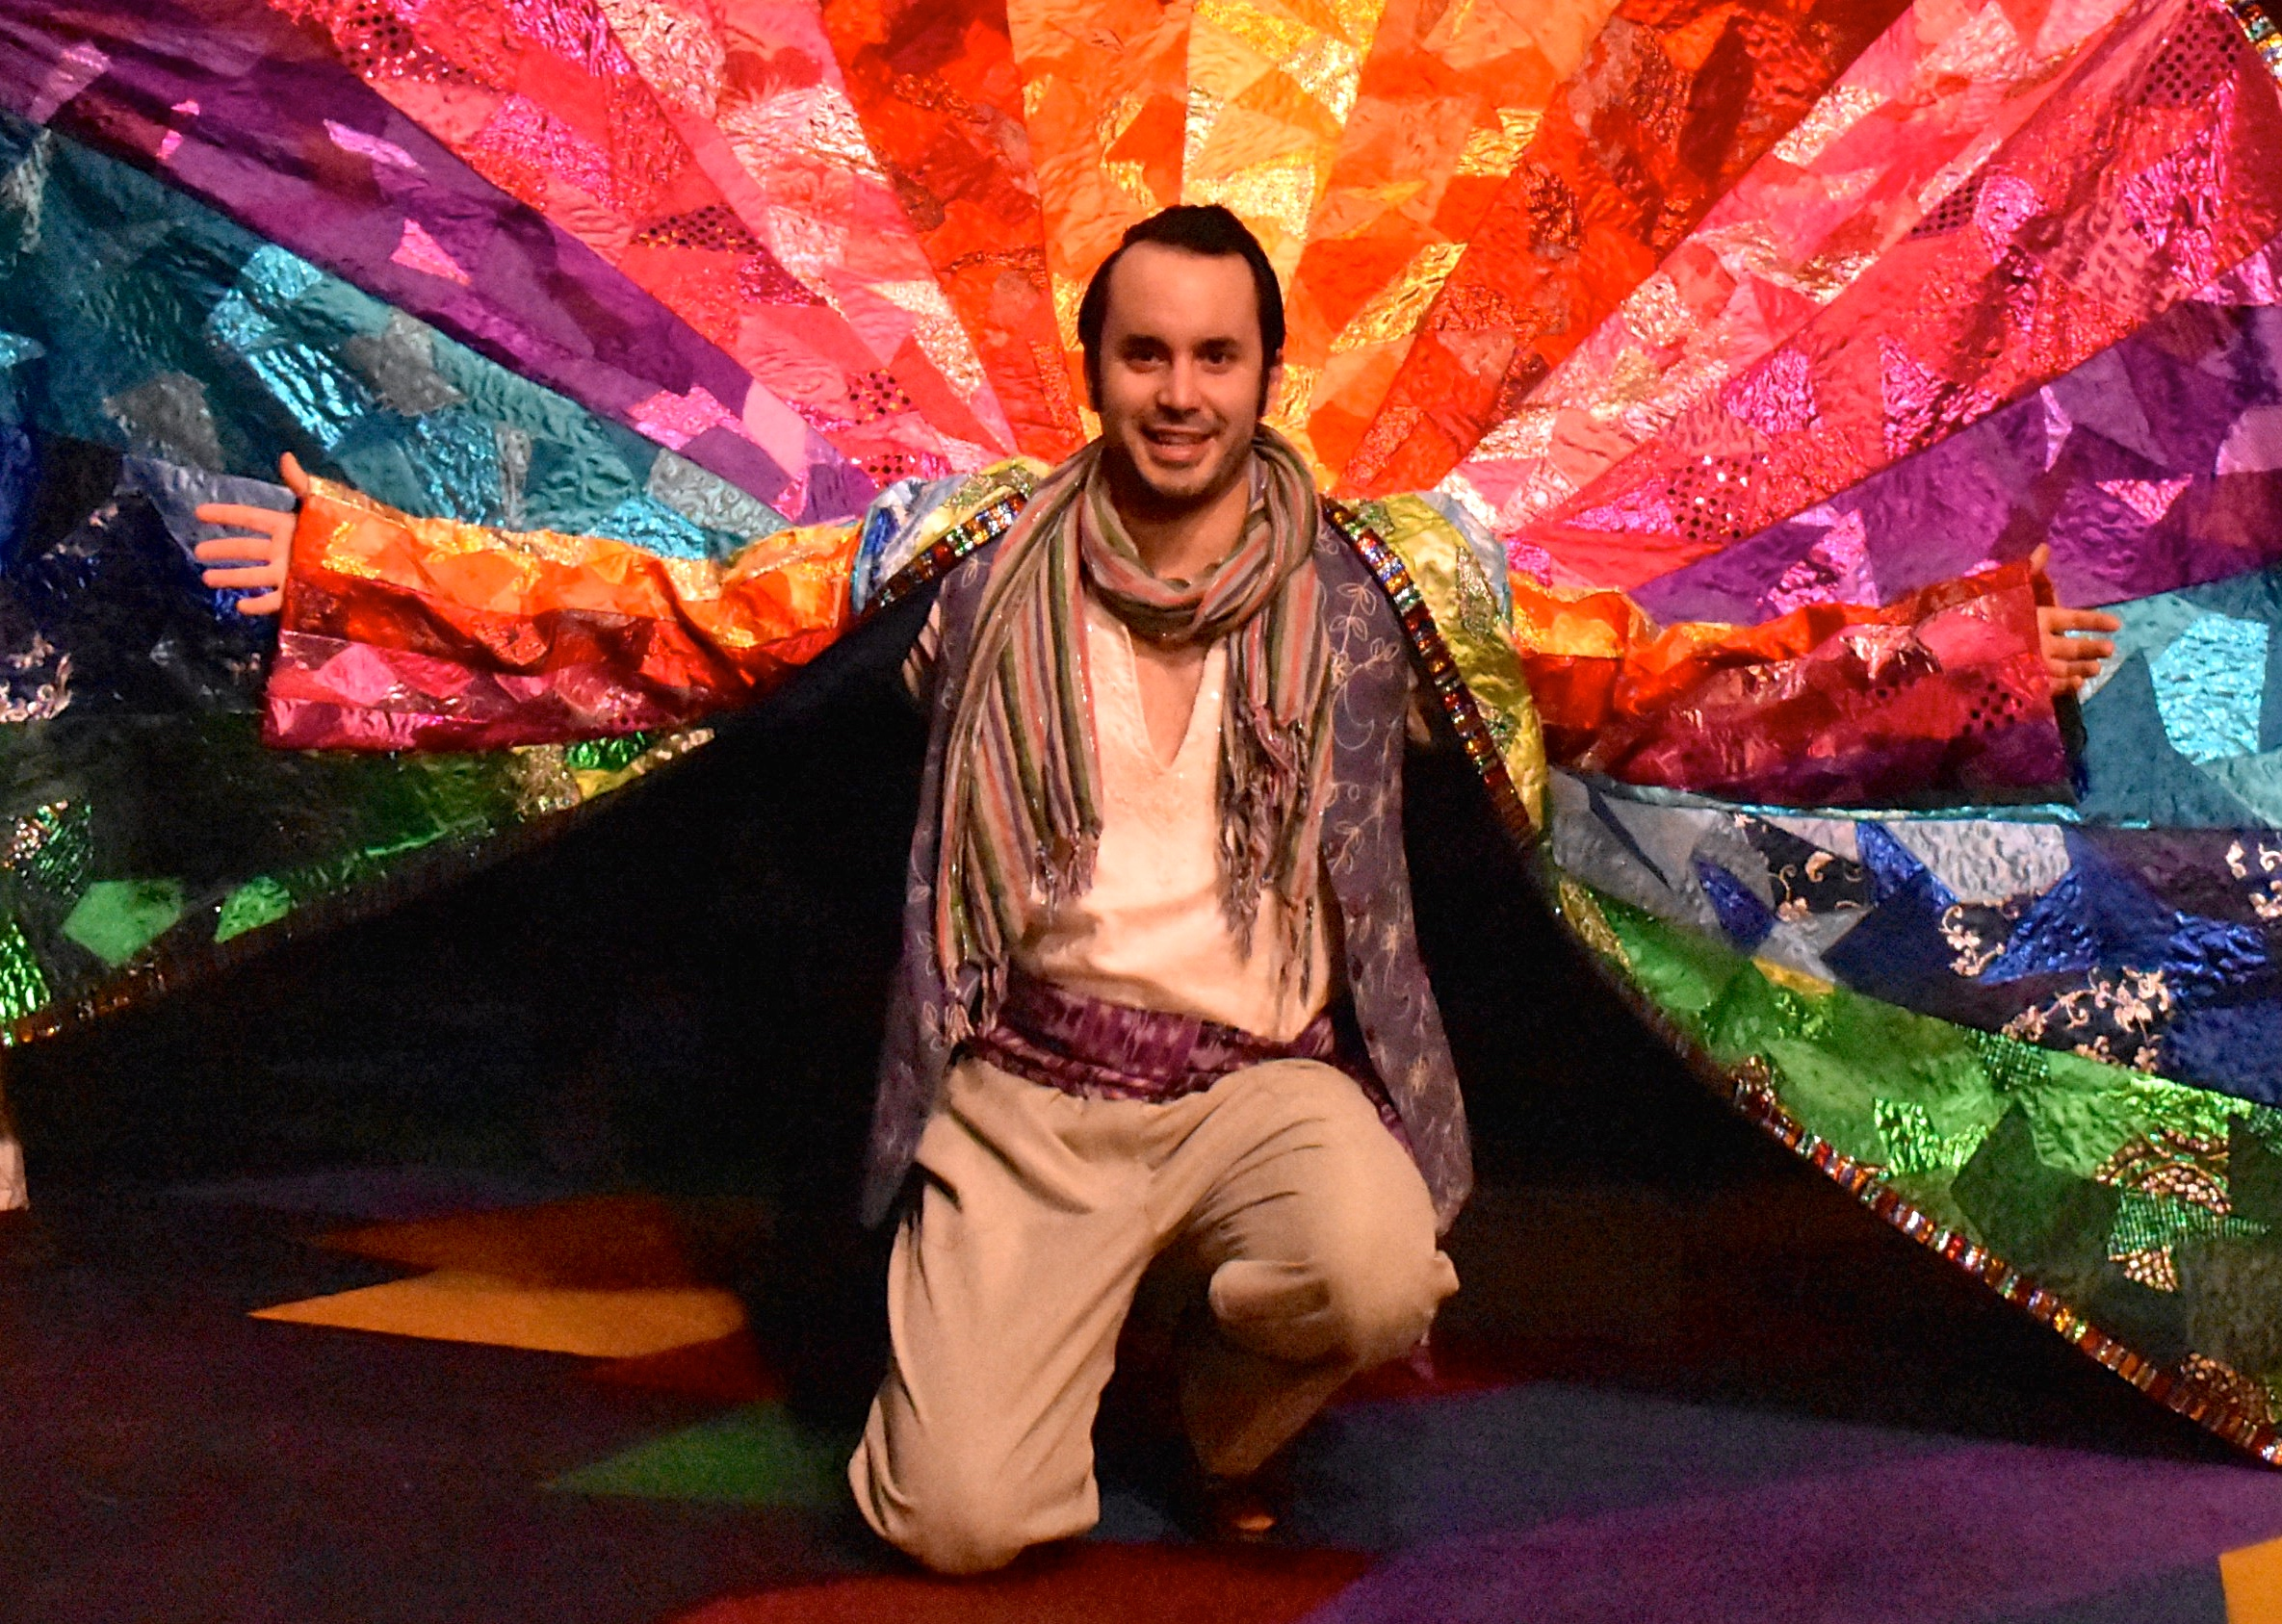 Joseph Und Joseph Joseph And The Amazing Technicolor Dreamcoat Opens At Actors